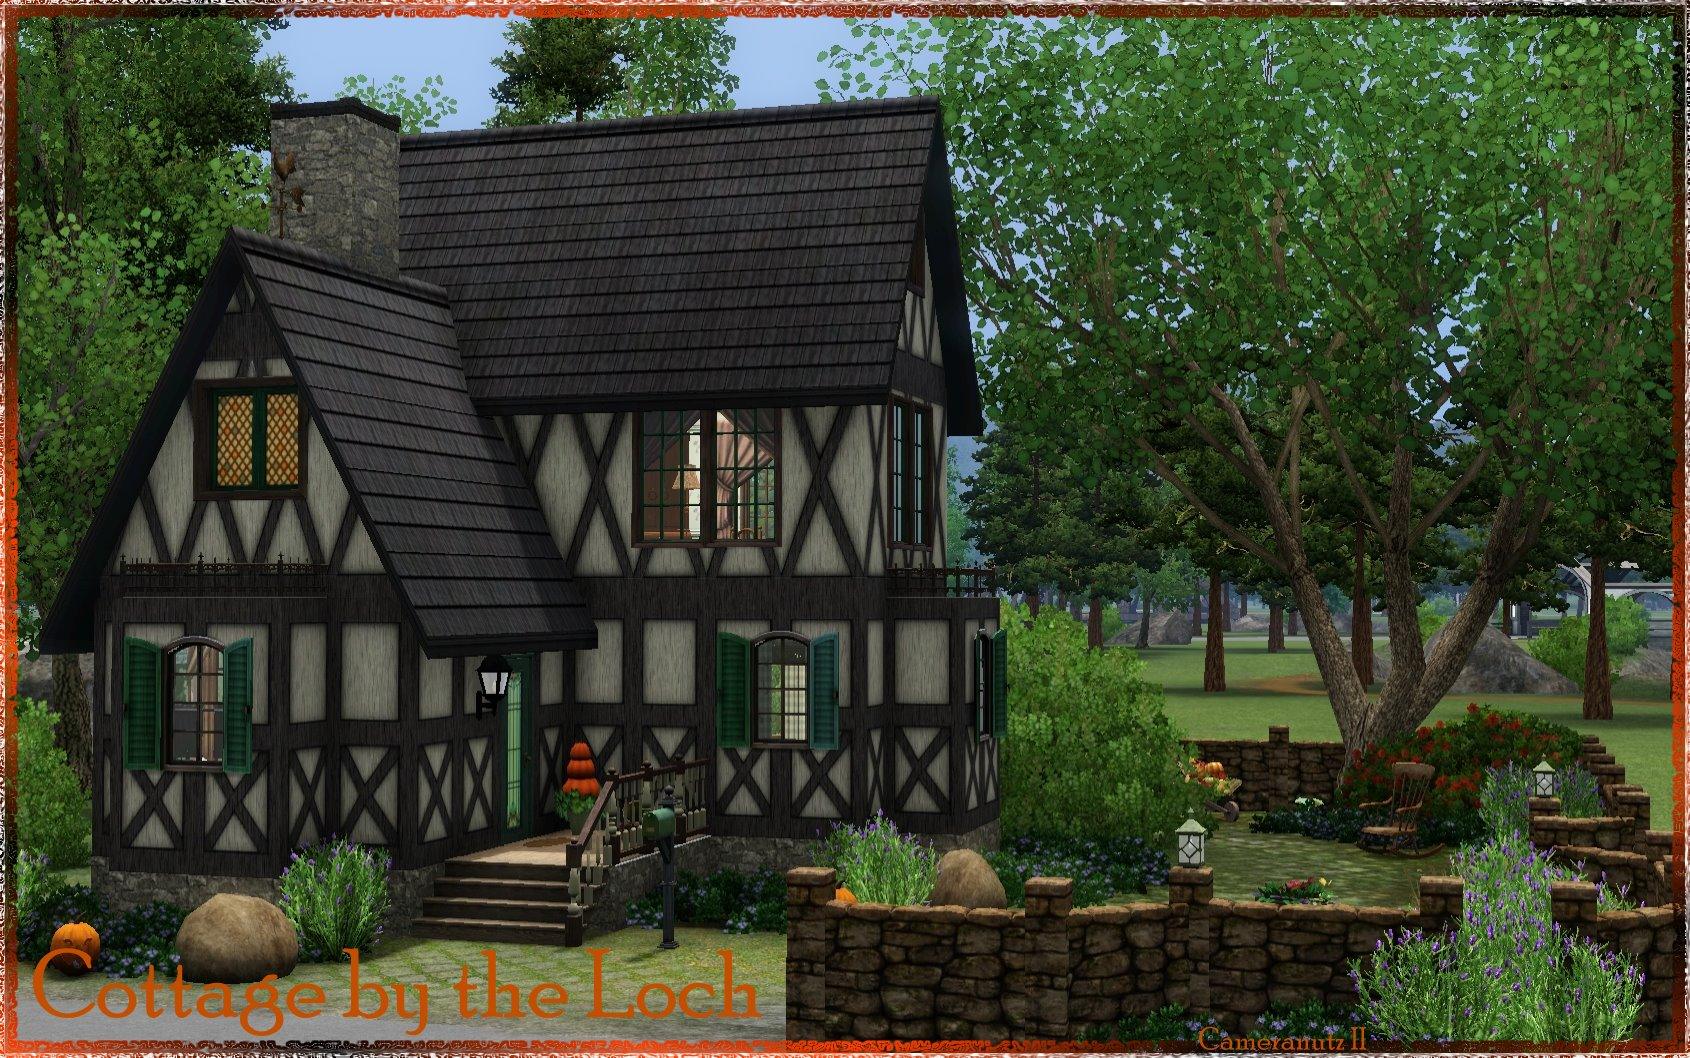 Cottage by the Loch